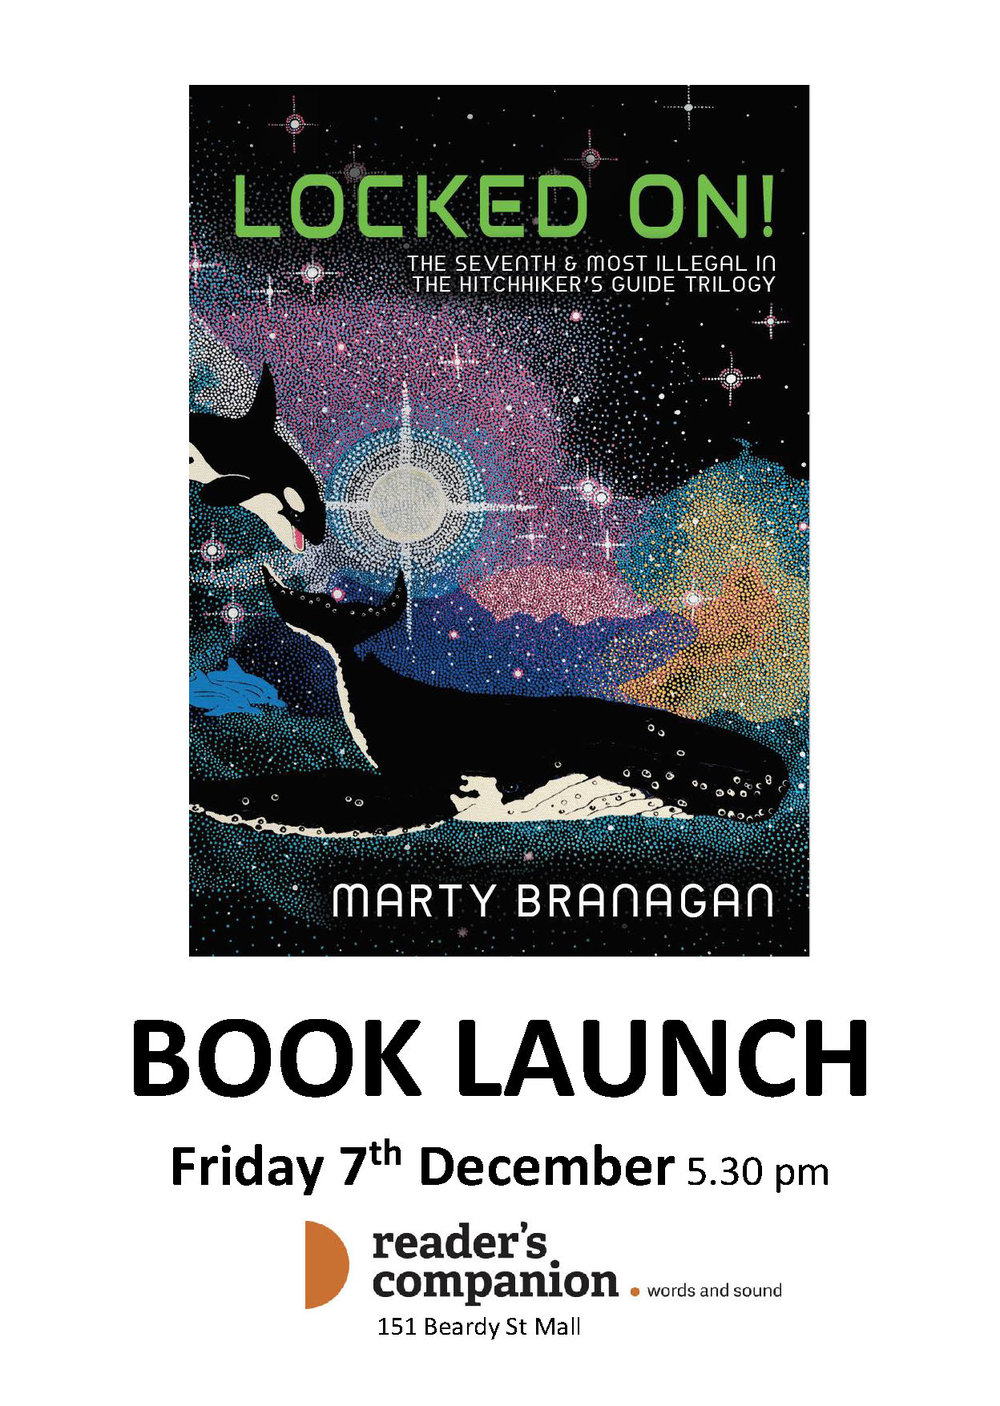 Locked On armidale launch poster.jpg